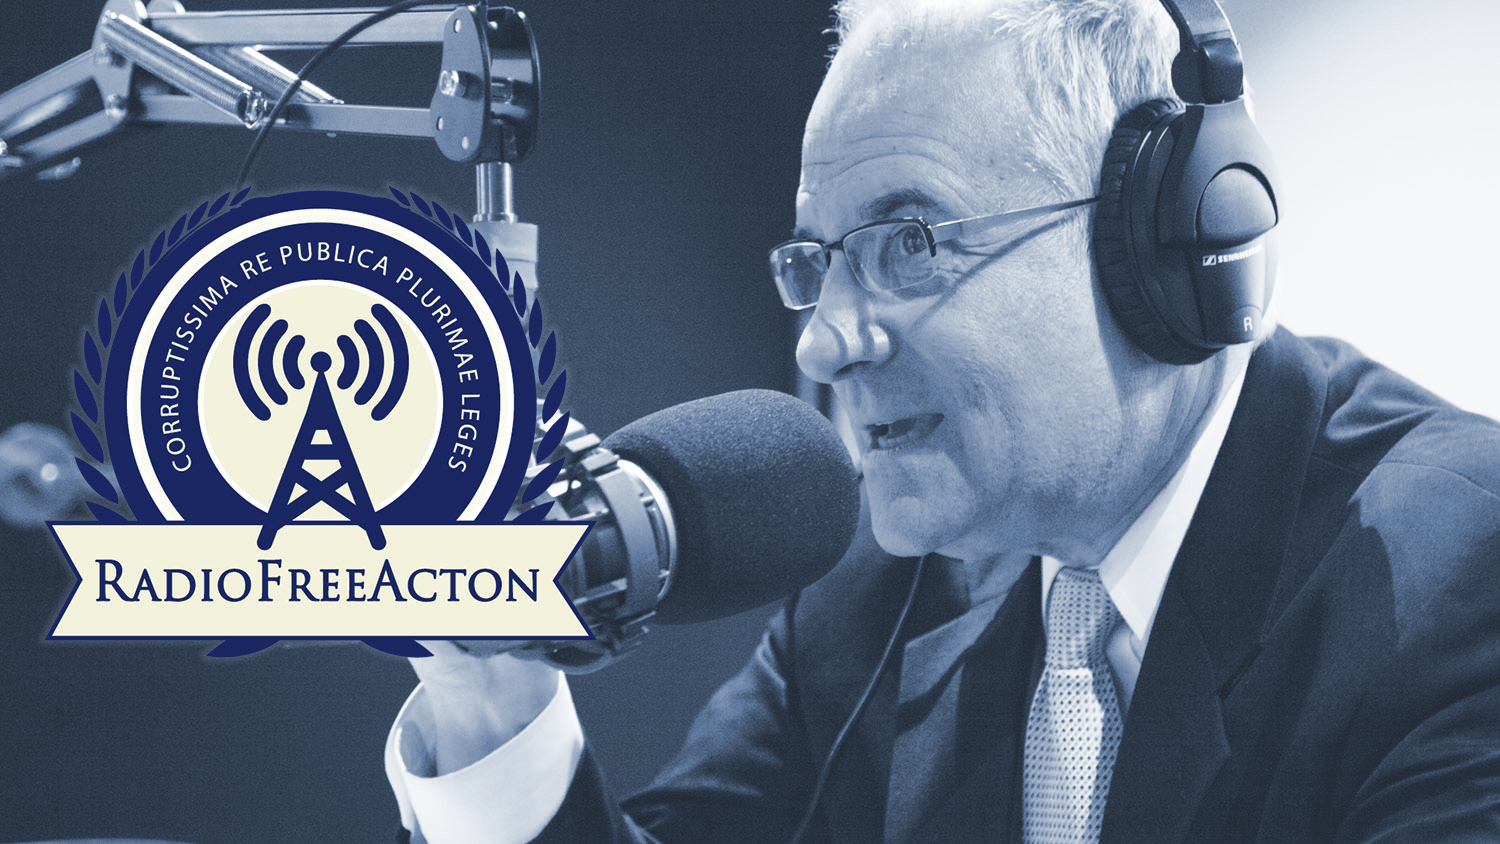 Radio free Acton - Judge Joseph Scoville